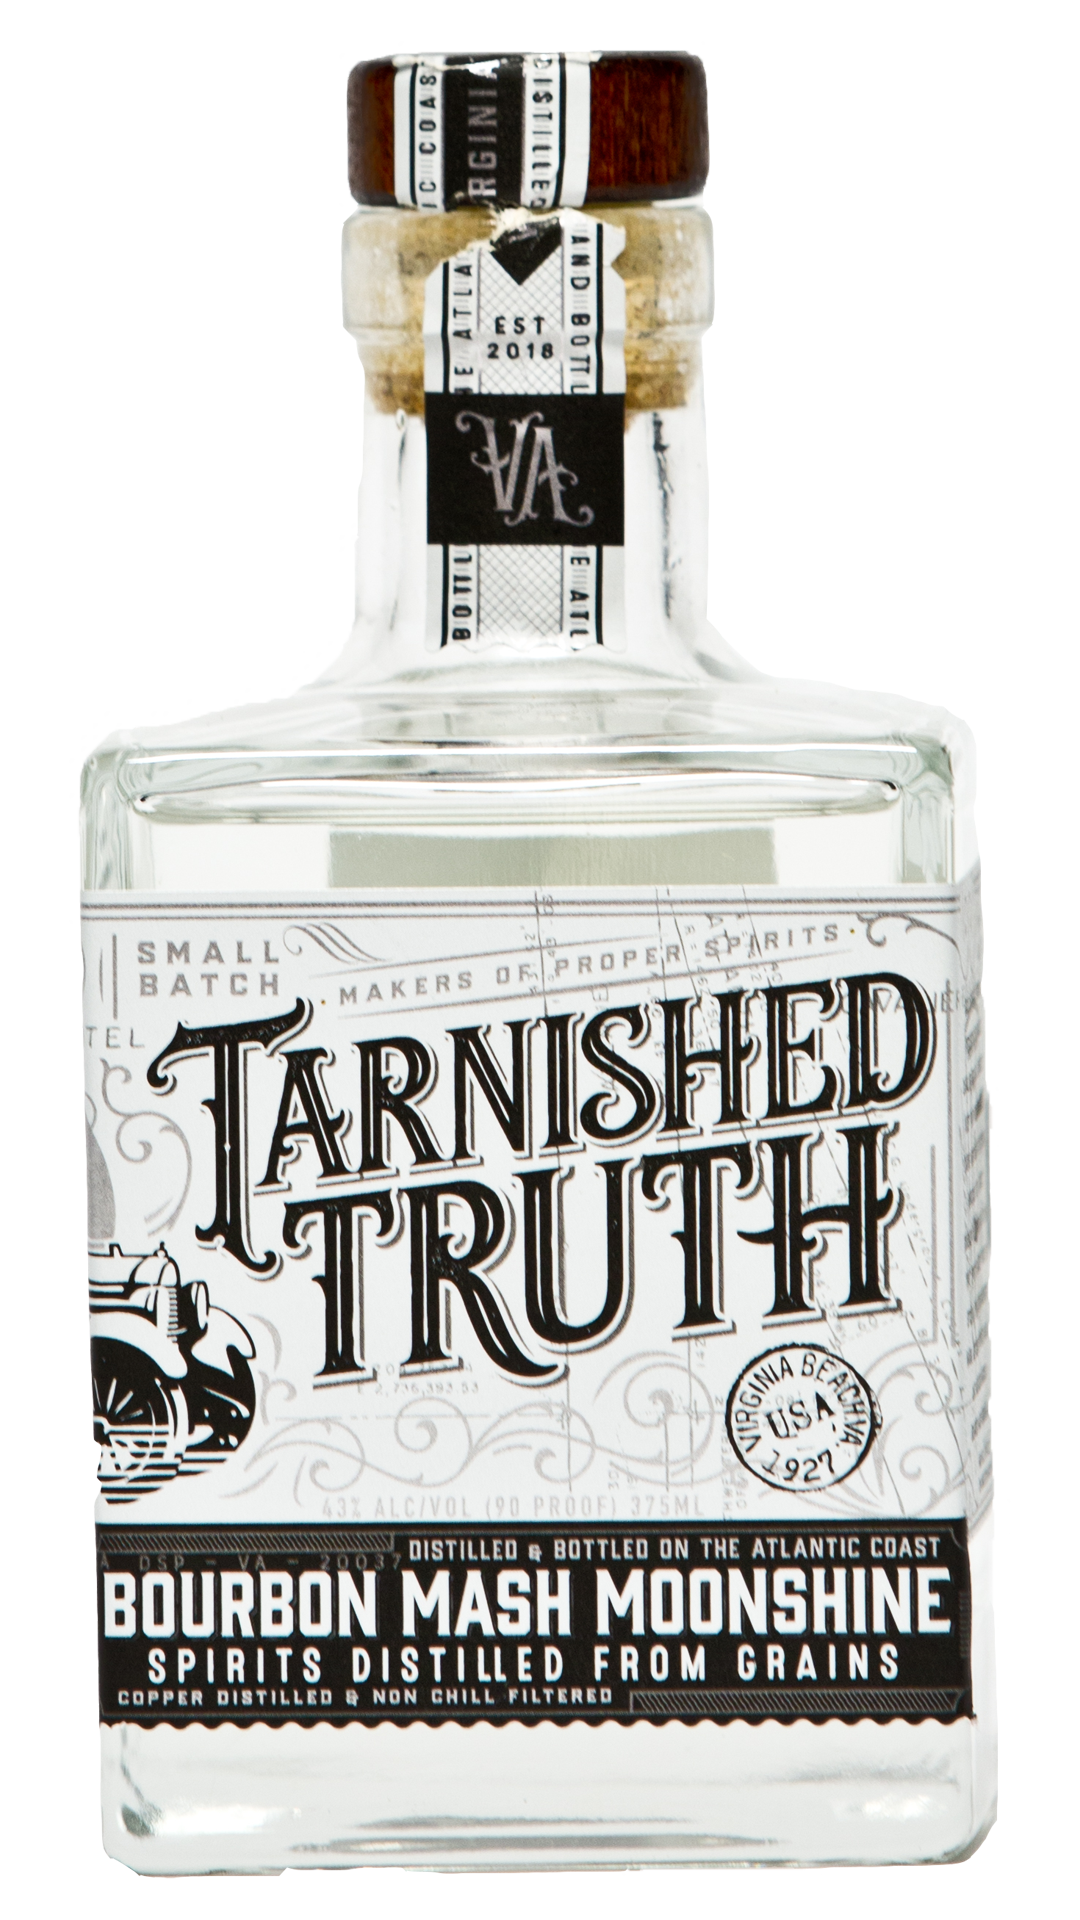 Bottle of Tarnished Truth Bourbon Mash Moonshine